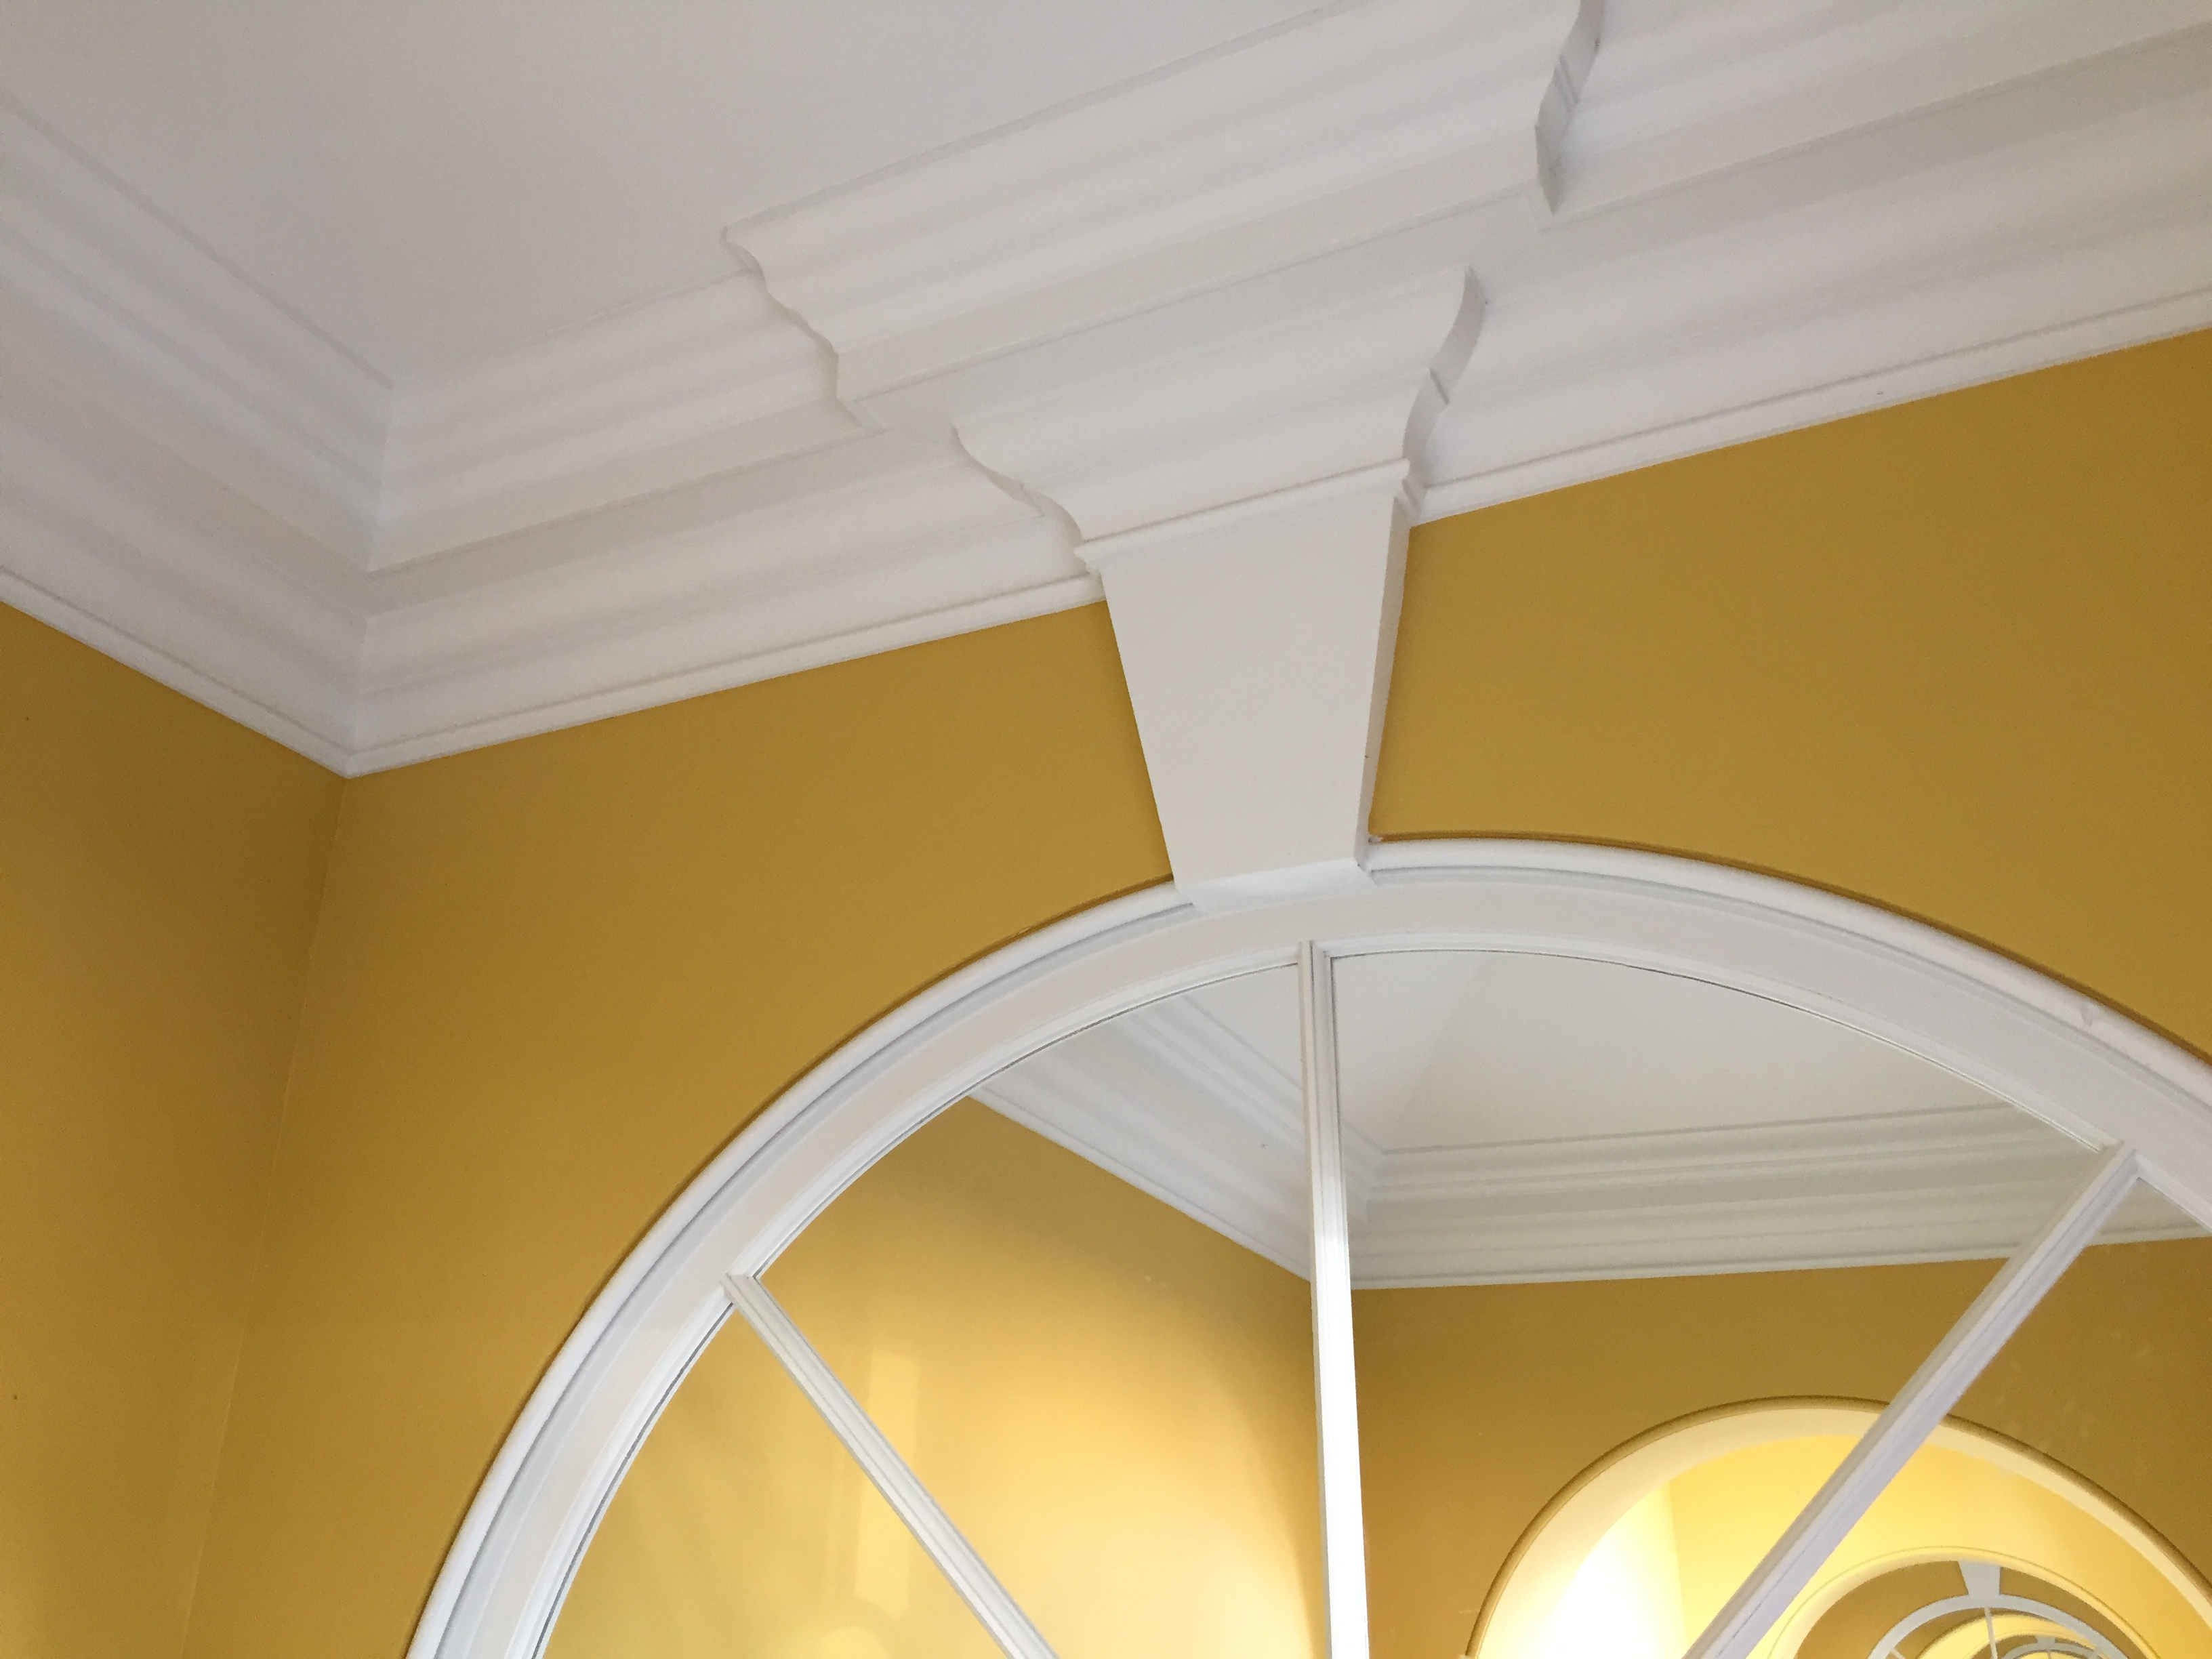 Fibrous Cornice and Arch